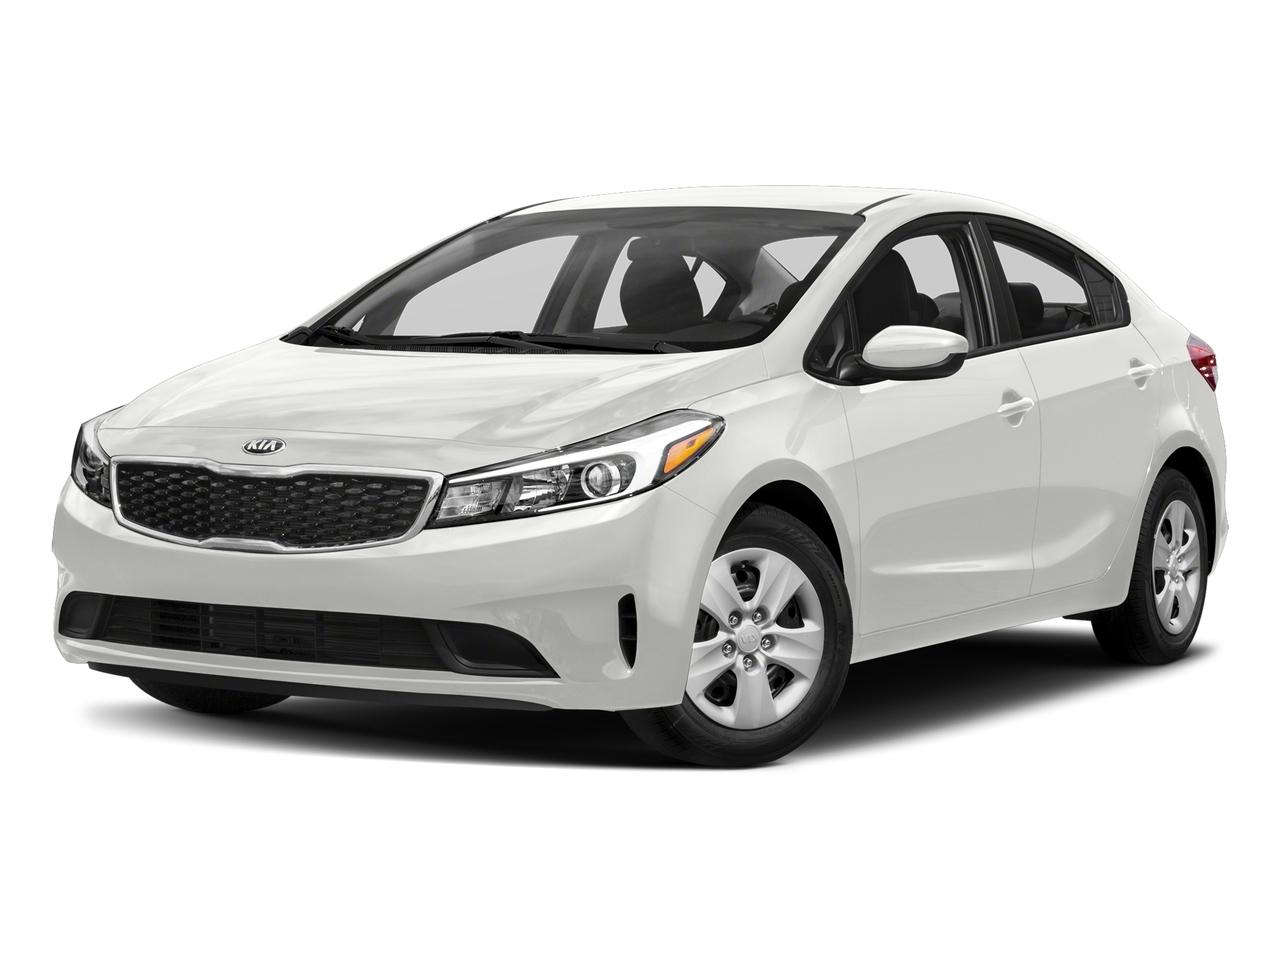 2017 Kia Forte Vehicle Photo in Beaufort, SC 29906